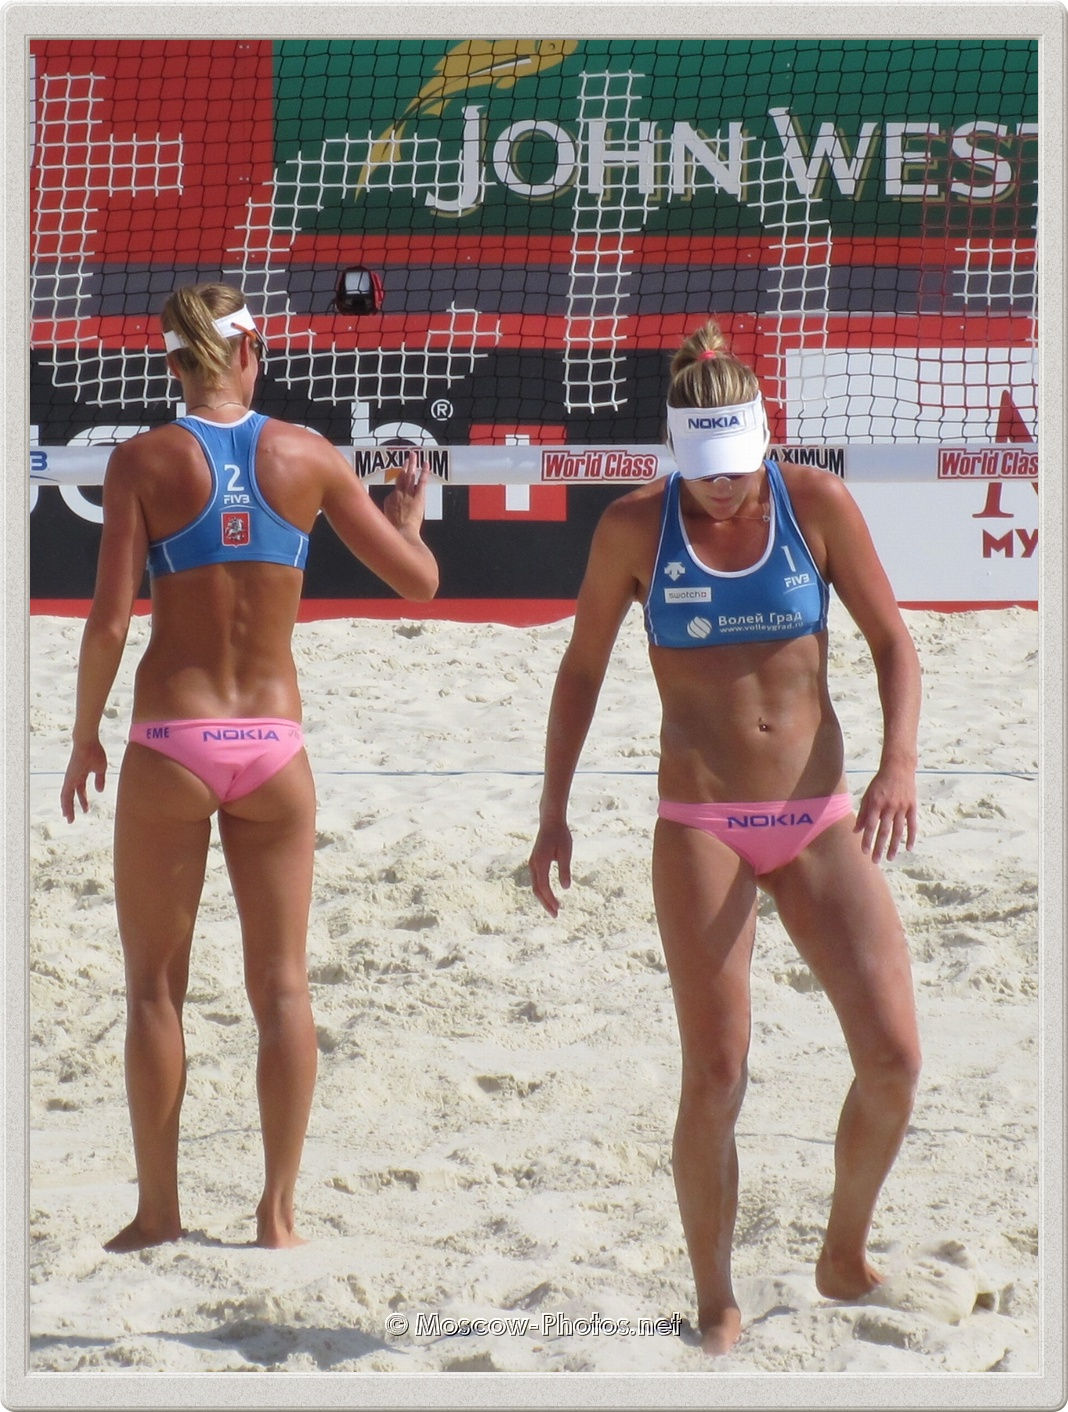 Beach Volleyball Players Emilia Nystrom & Erika Nystrom